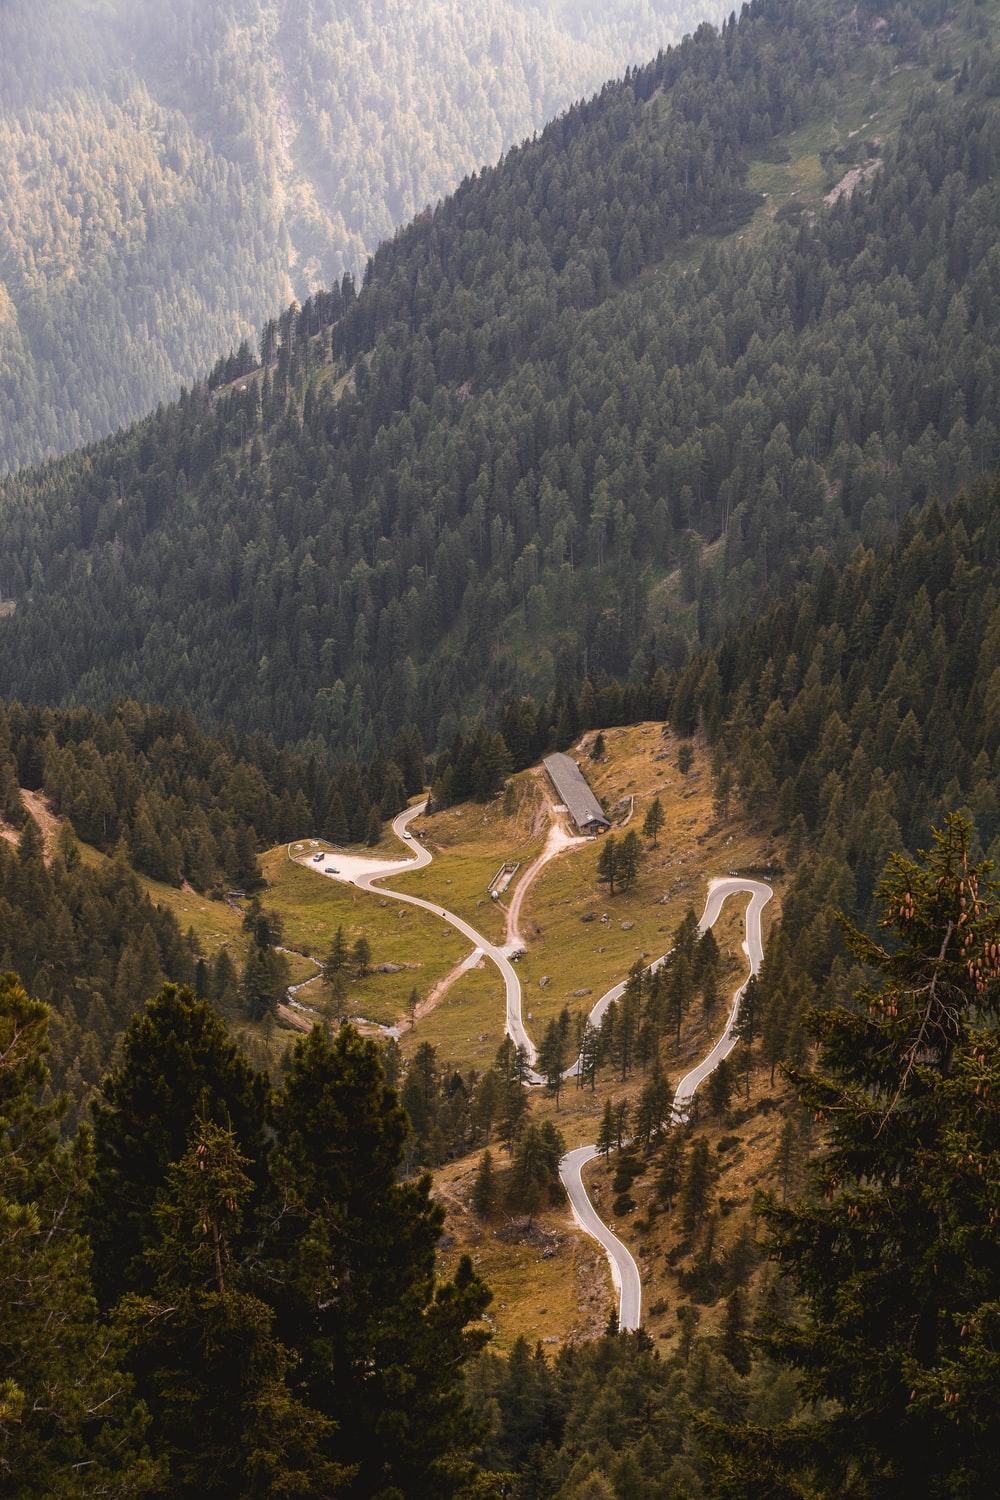 A zigzagging road surrounded by evergreen woods on a hillside in Manghen Pass